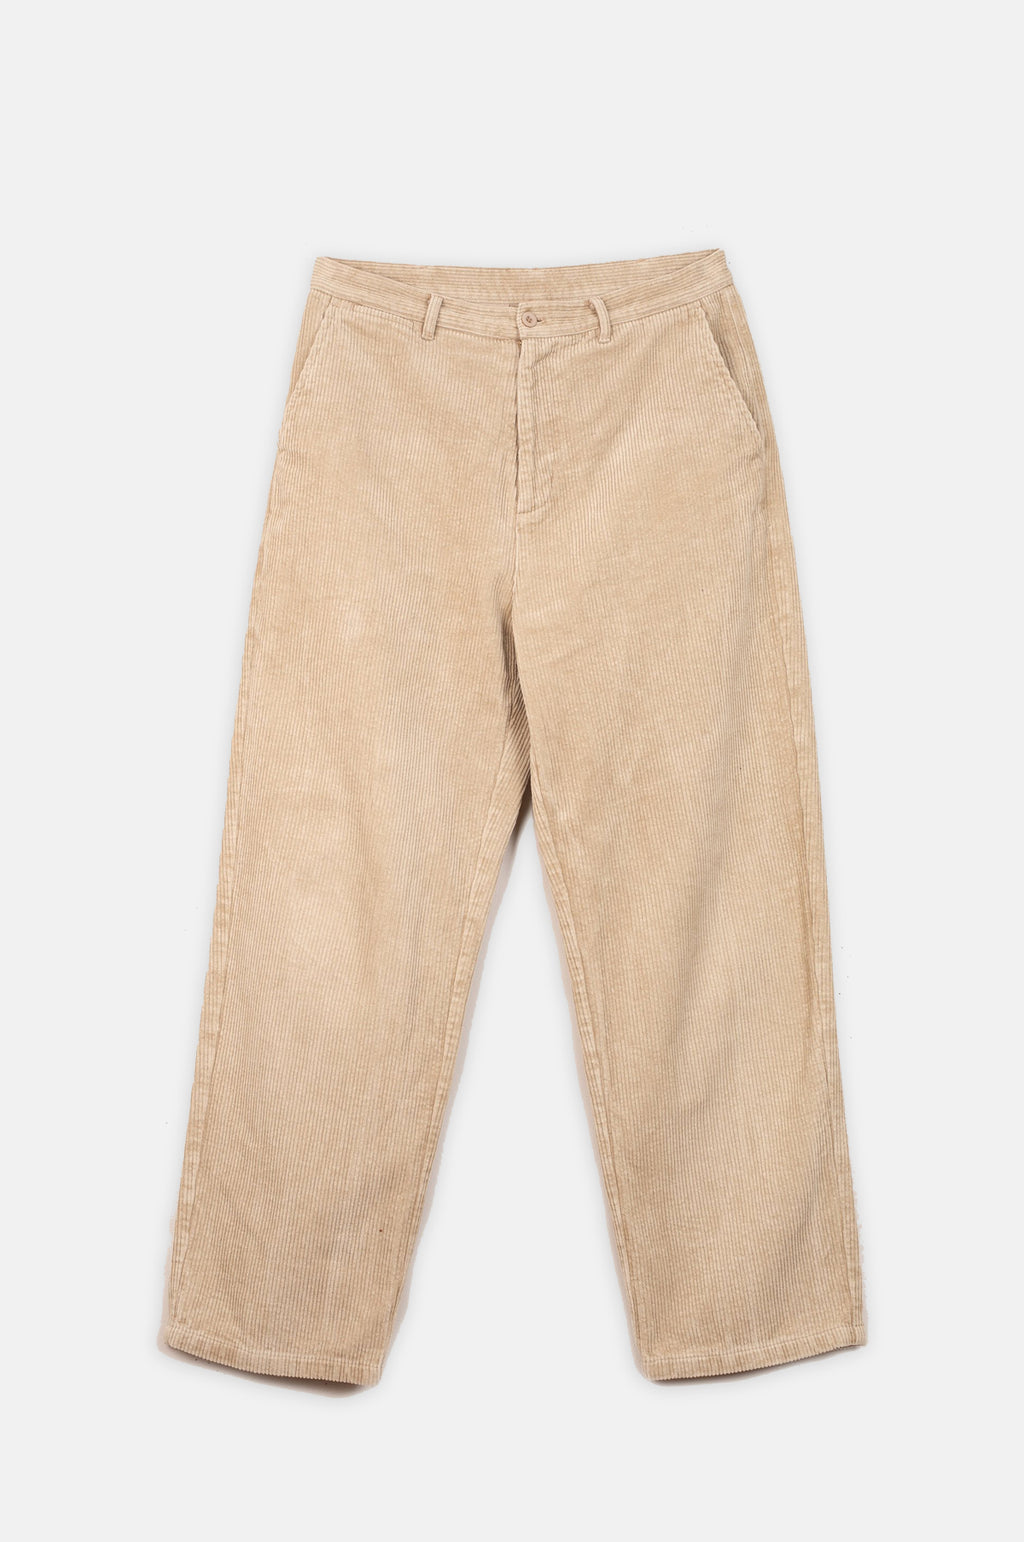 Corduroy Trousers in Taupe